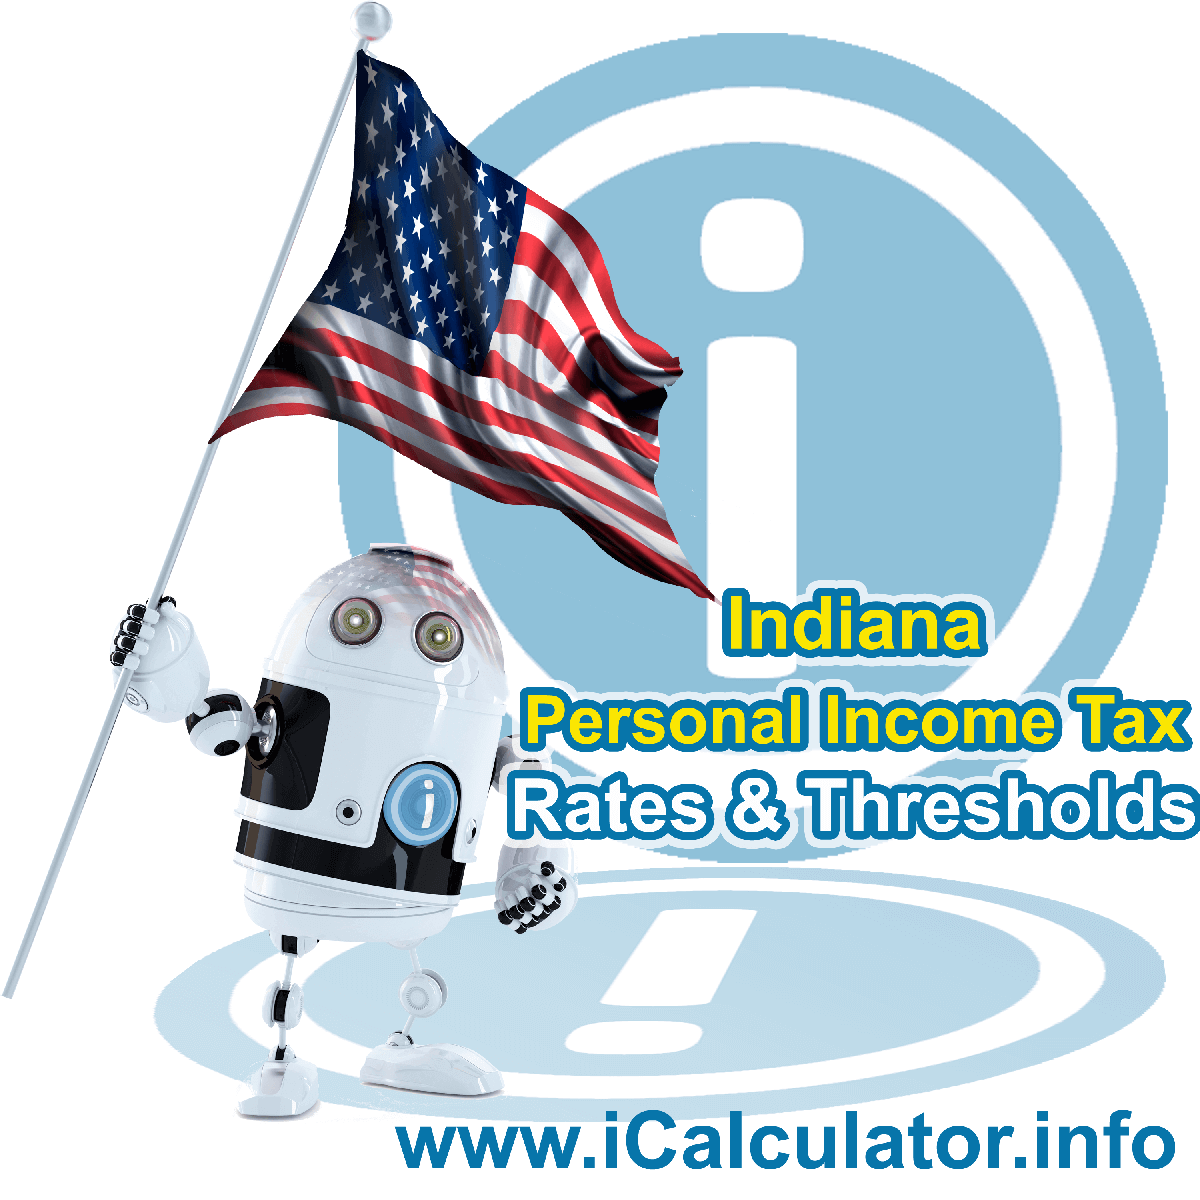 Indiana State Tax Tables 2018. This image displays details of the Indiana State Tax Tables for the 2018 tax return year which is provided in support of the 2018 US Tax Calculator